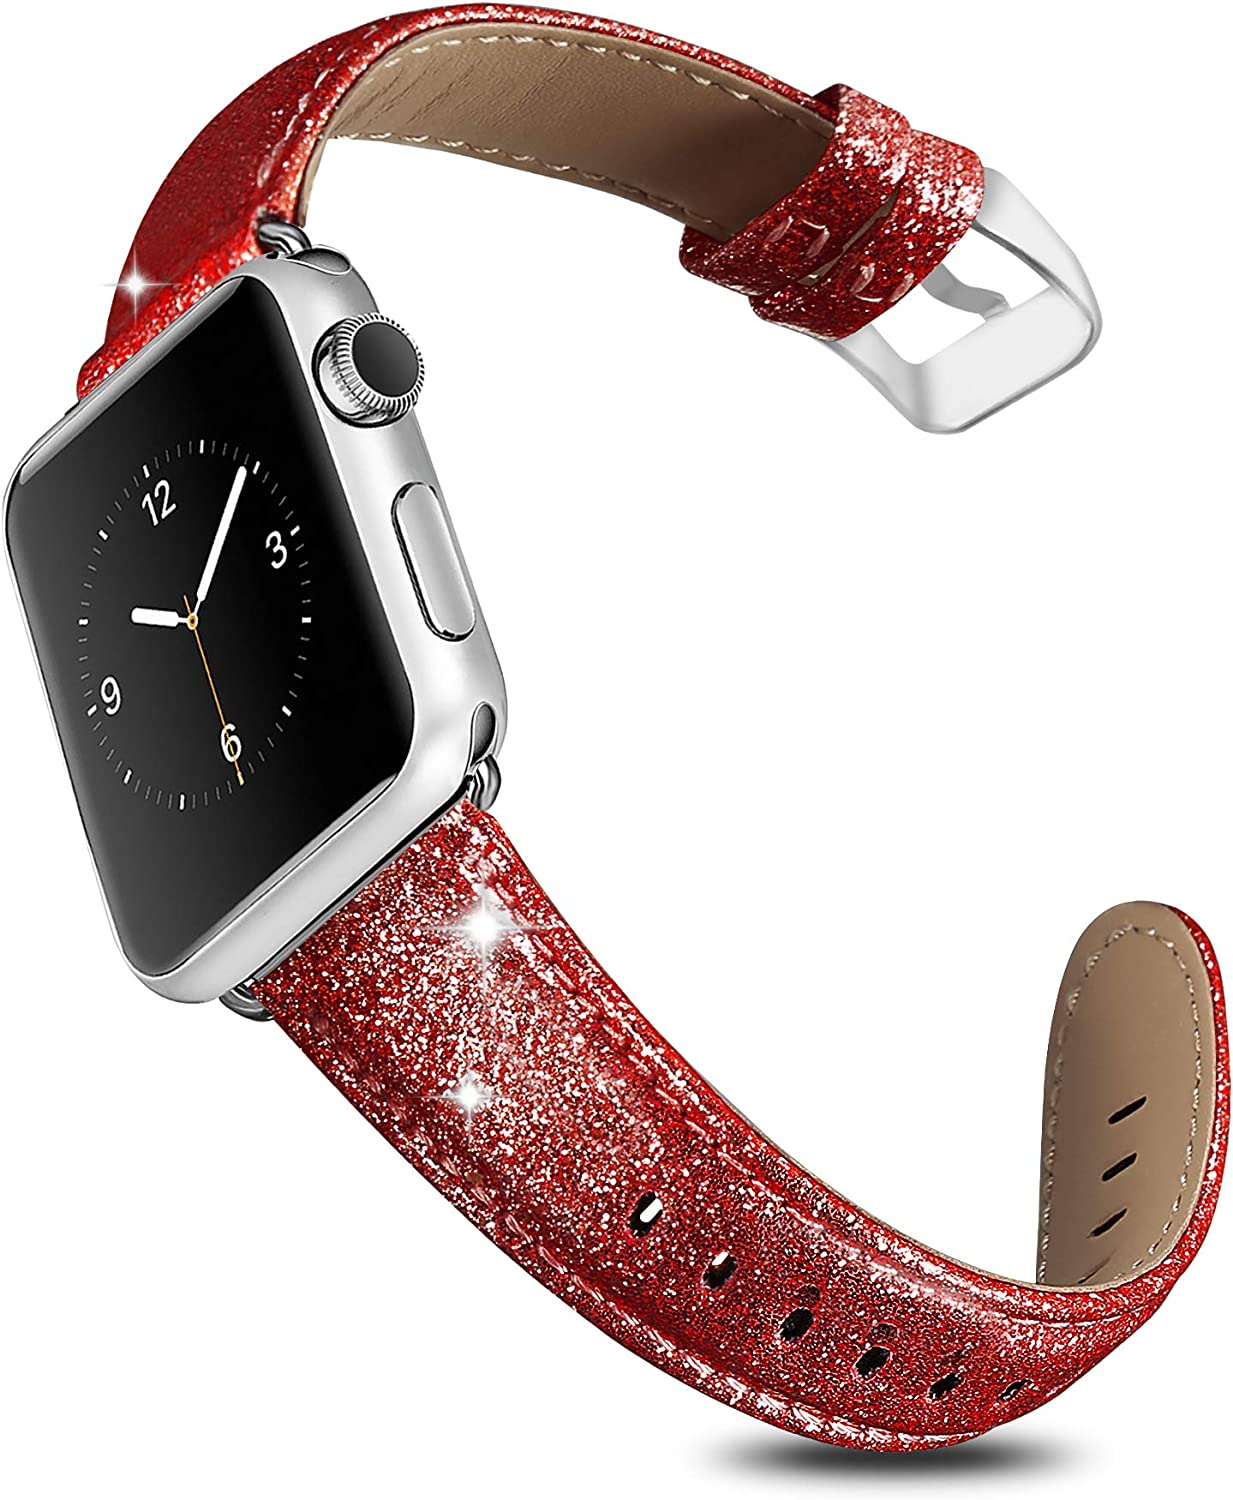 UMAXGET Compatible with Apple Watch Band Series 5/4/3/2/1, 38mm 40mm 42mm 44mm Glittering Leather Strap Compatible with iWatch for Men Women